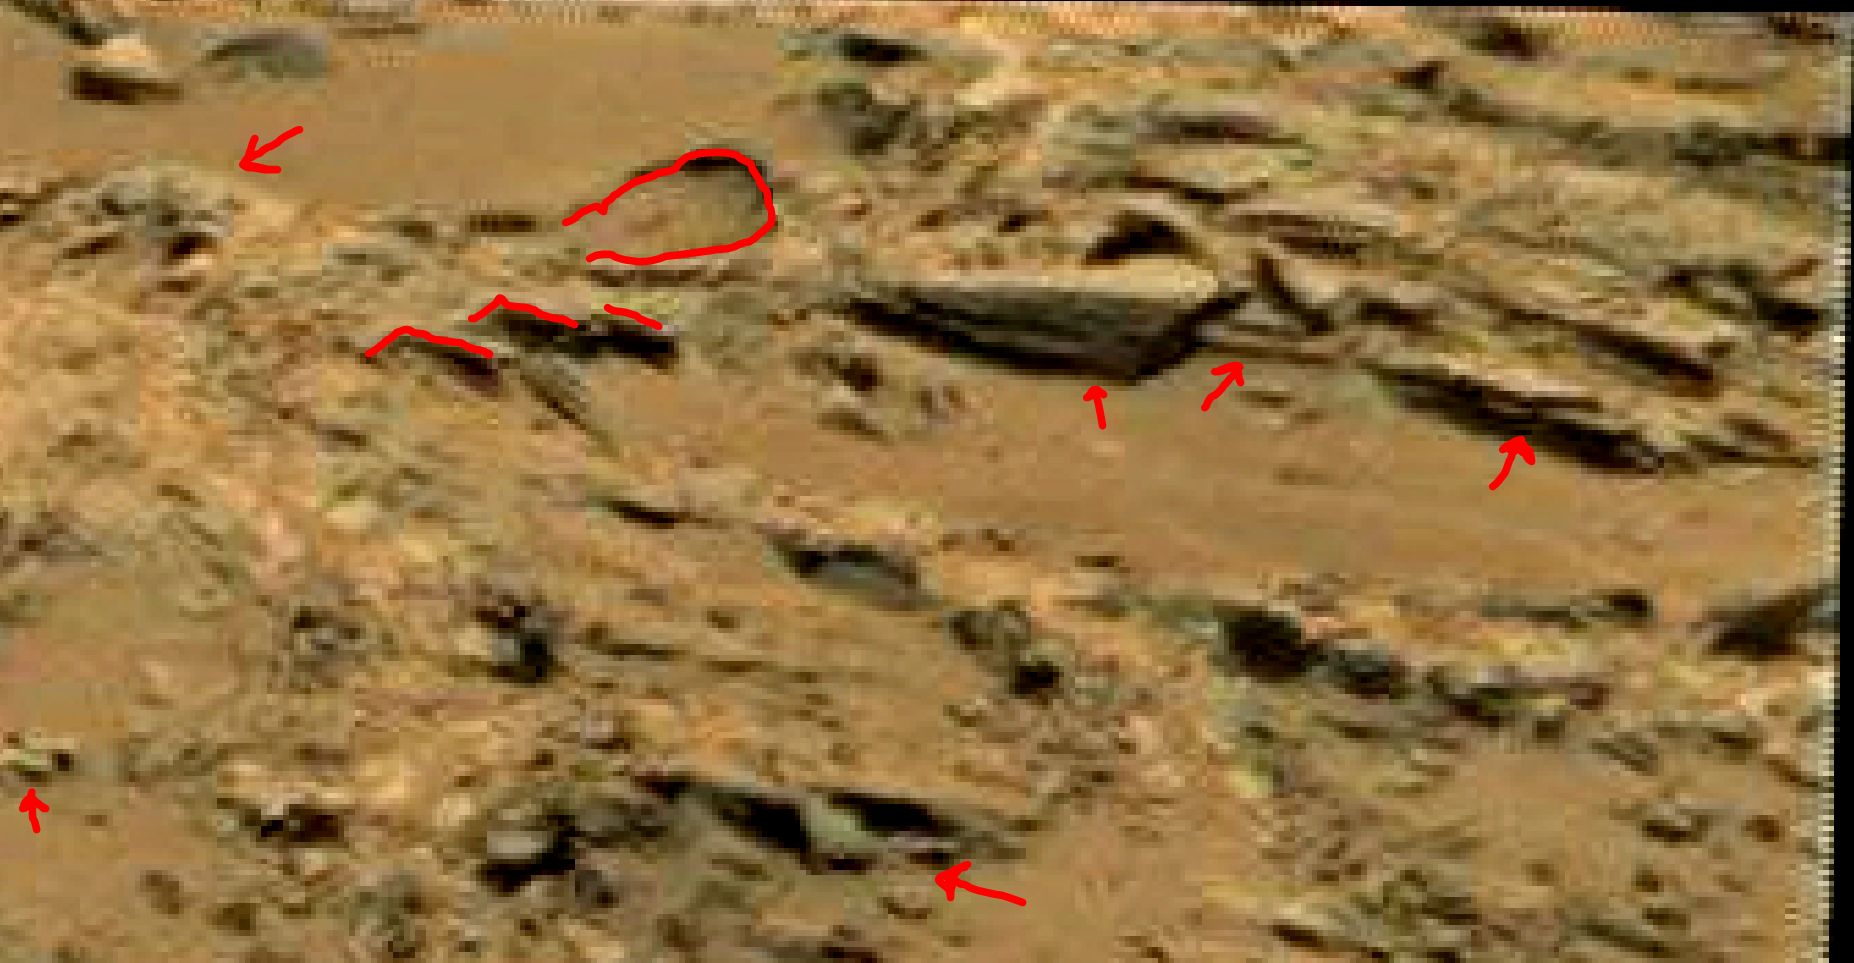 mars sol 1353 anomaly-artifacts 73a was life on mars